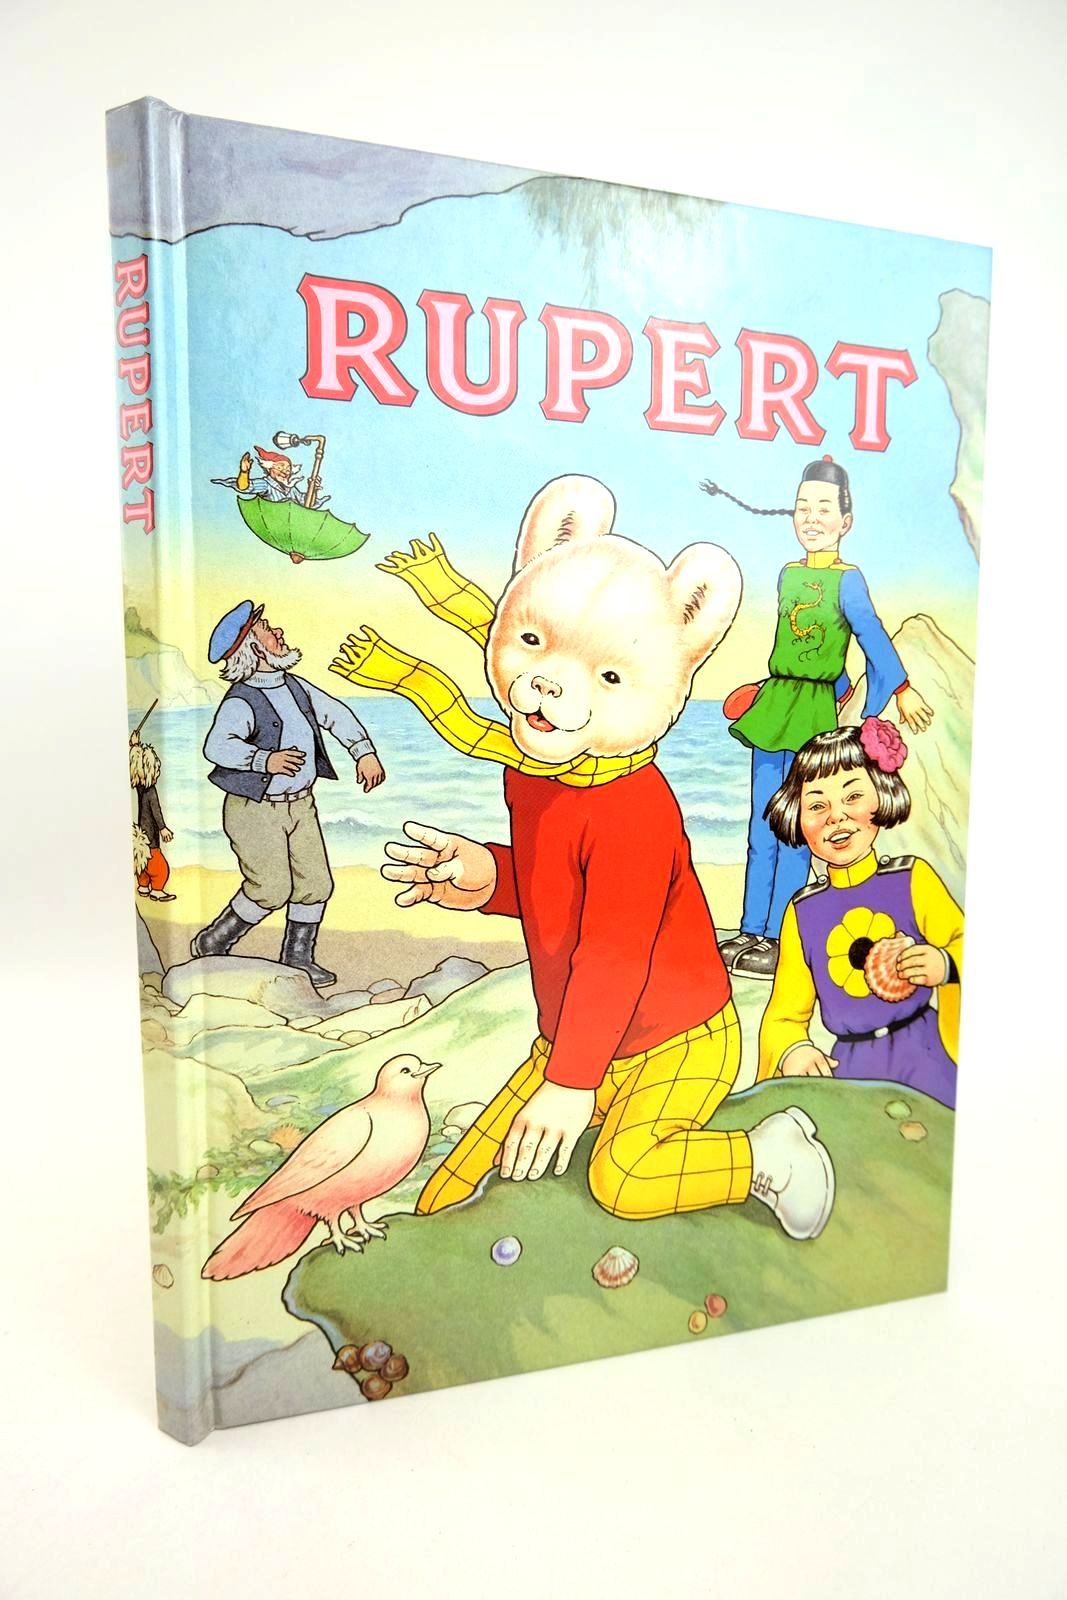 Photo of RUPERT ANNUAL 1991 written by Henderson, James Robinson, Ian illustrated by Harrold, John Bestall, Alfred published by Daily Express (STOCK CODE: 1318788)  for sale by Stella & Rose's Books